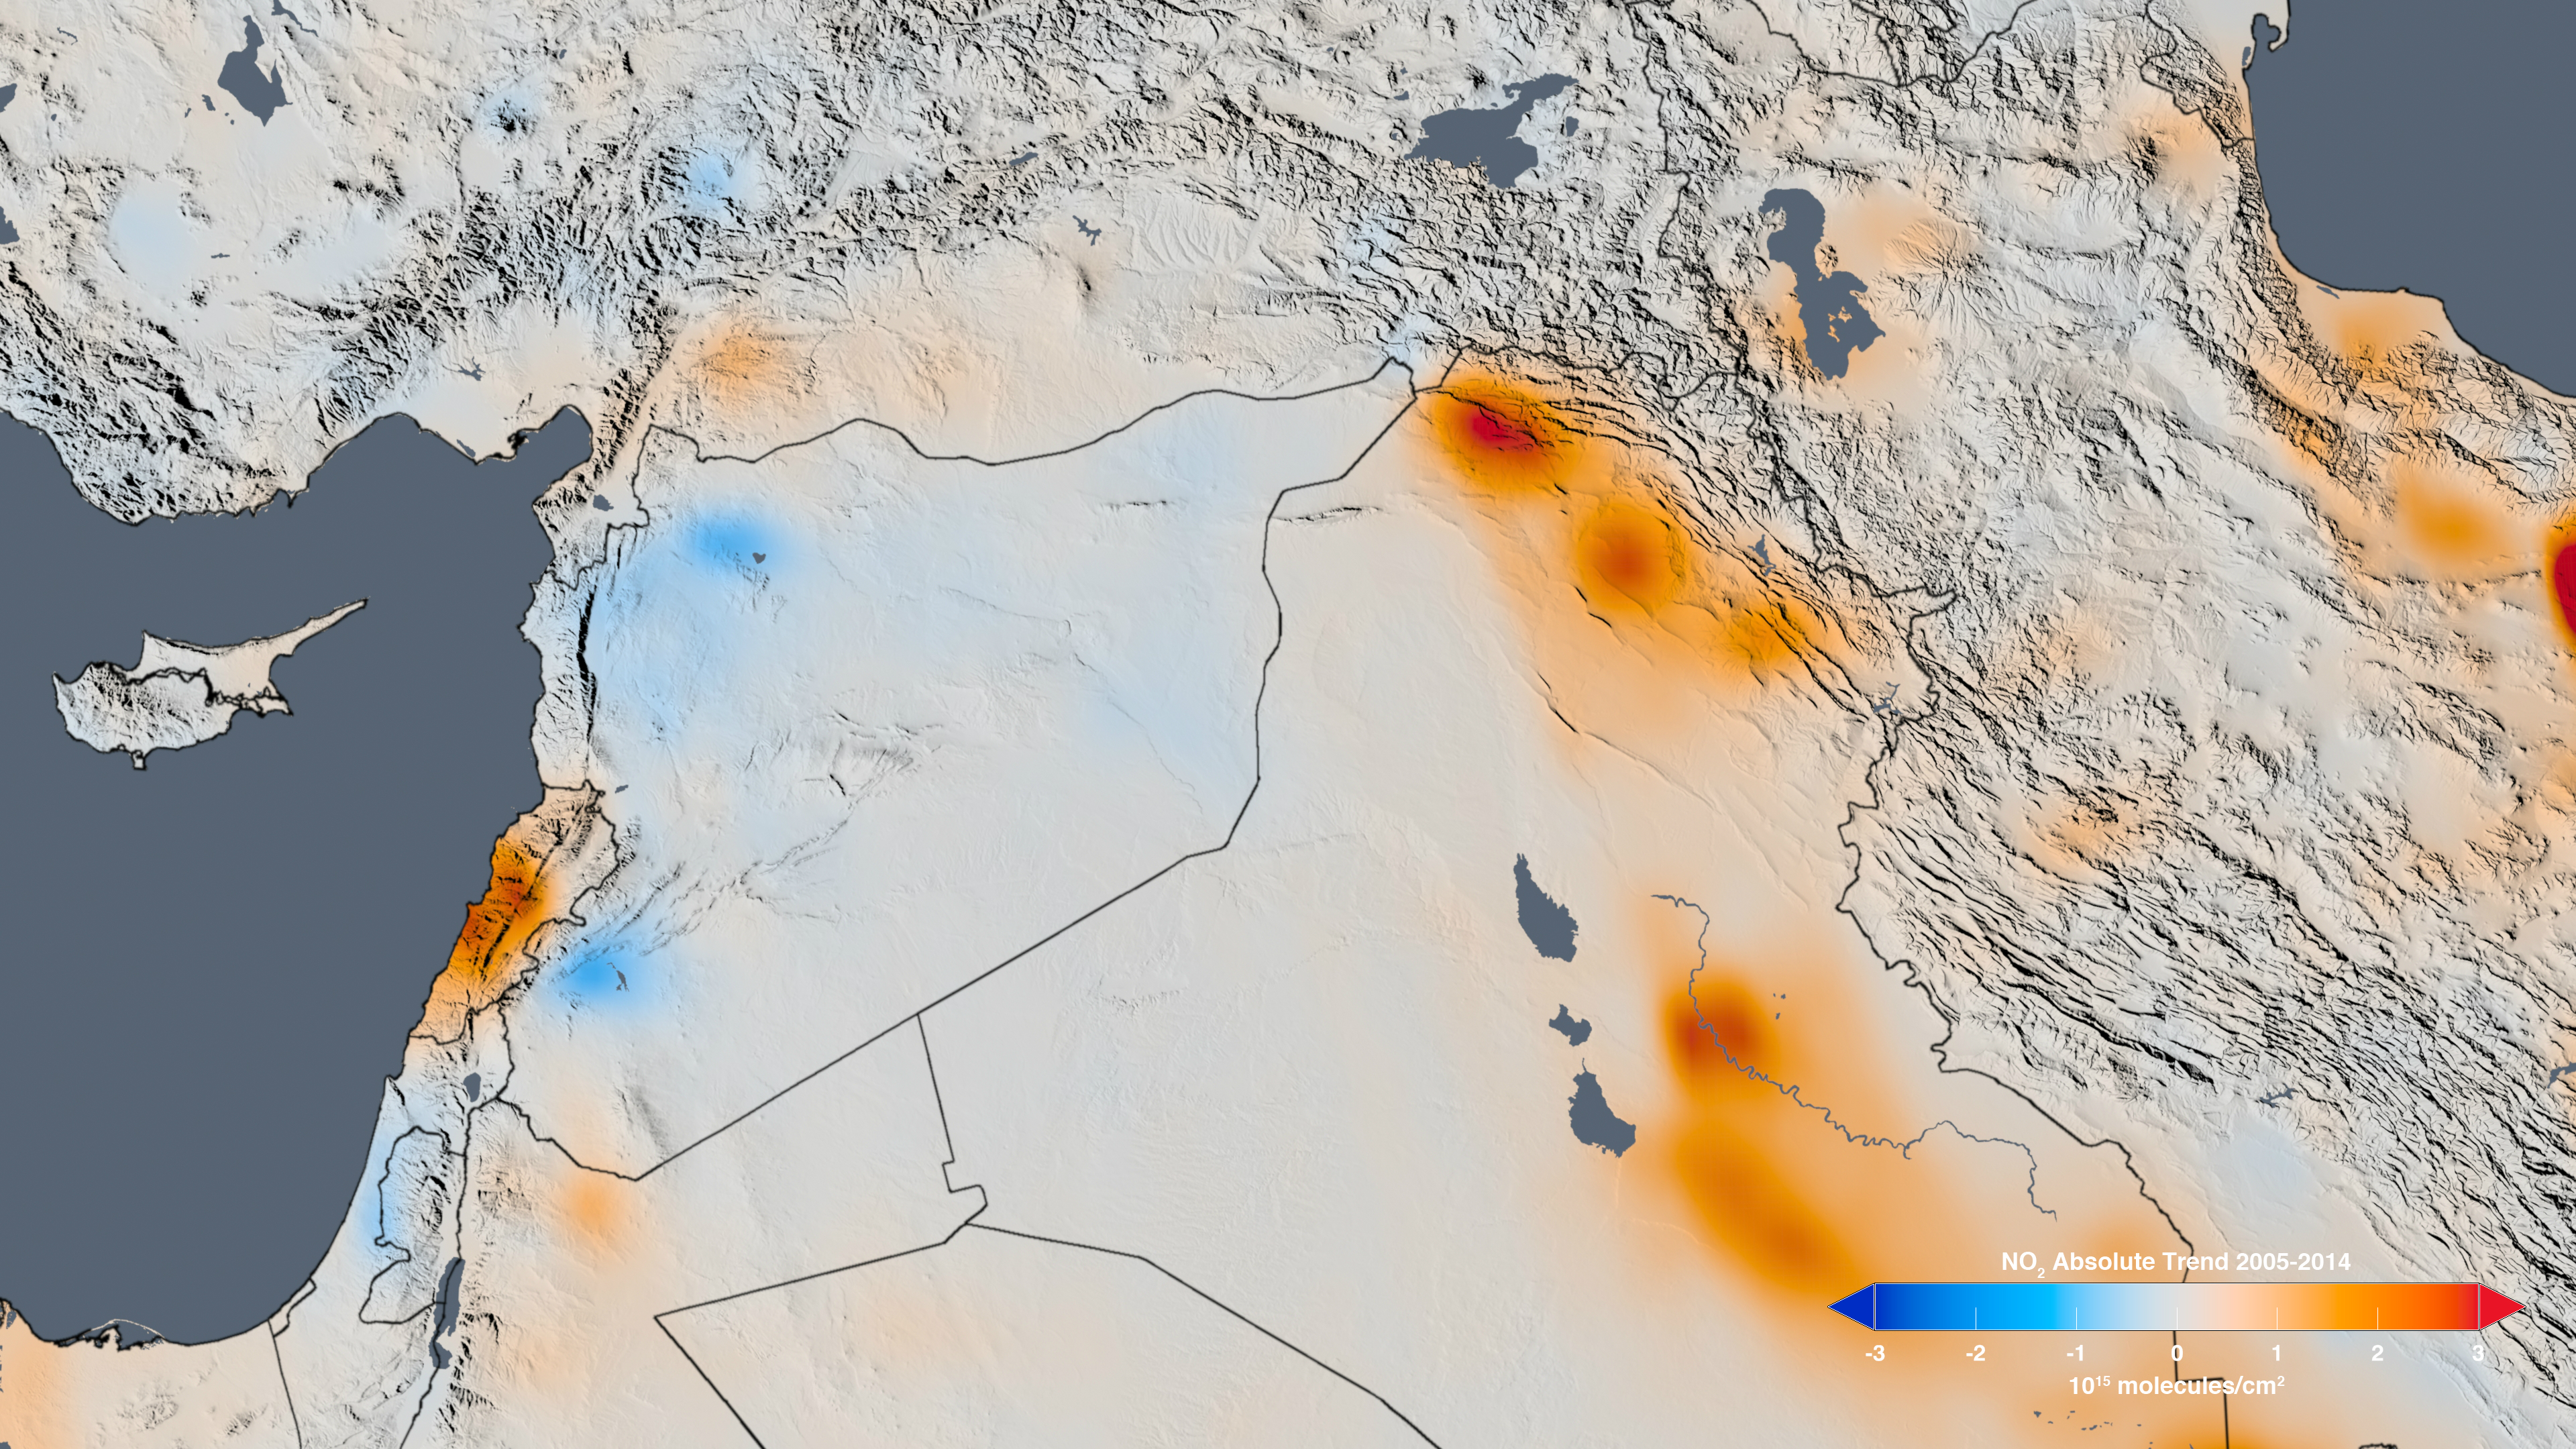 The Trend Map Of The Middle East Shows The Change In Nitrogen Dioxide Concentrations From 2005